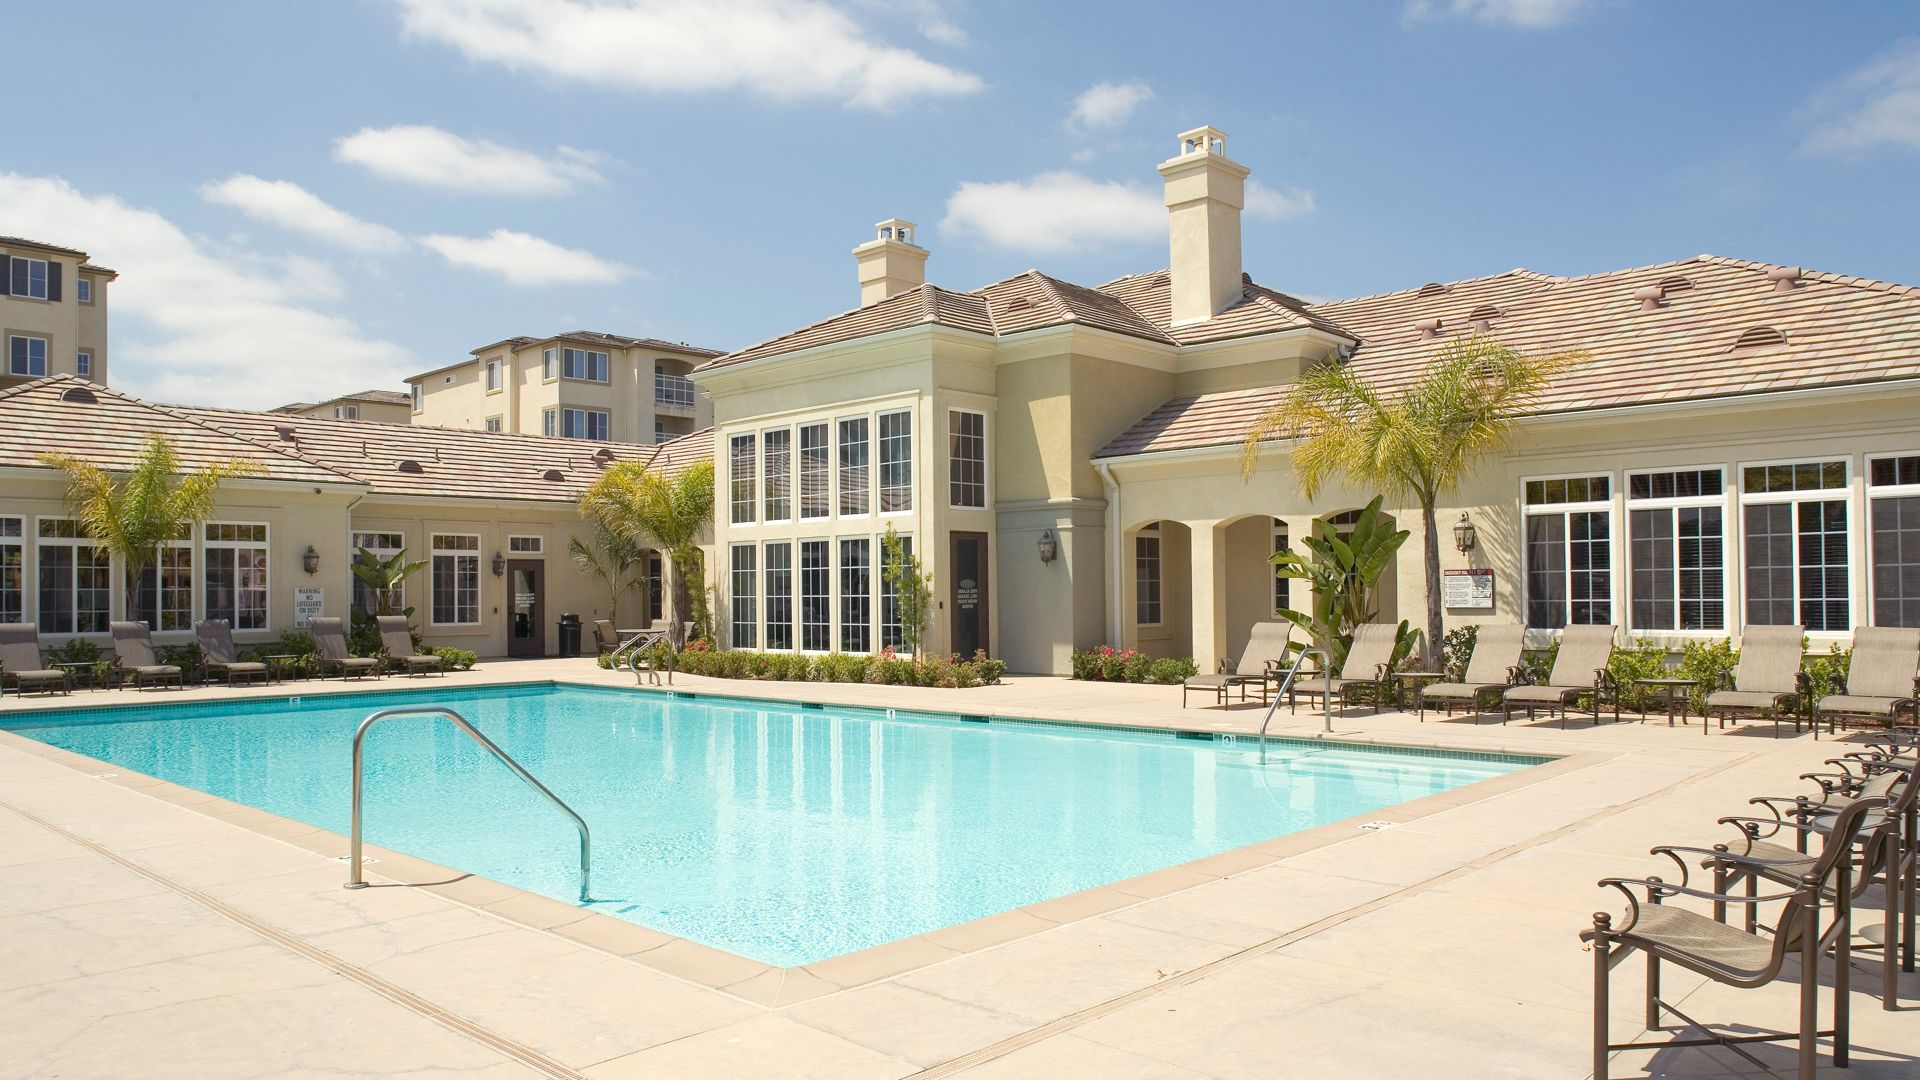 Bella Vista At Warner Ridge Apartments - Swimming Pool